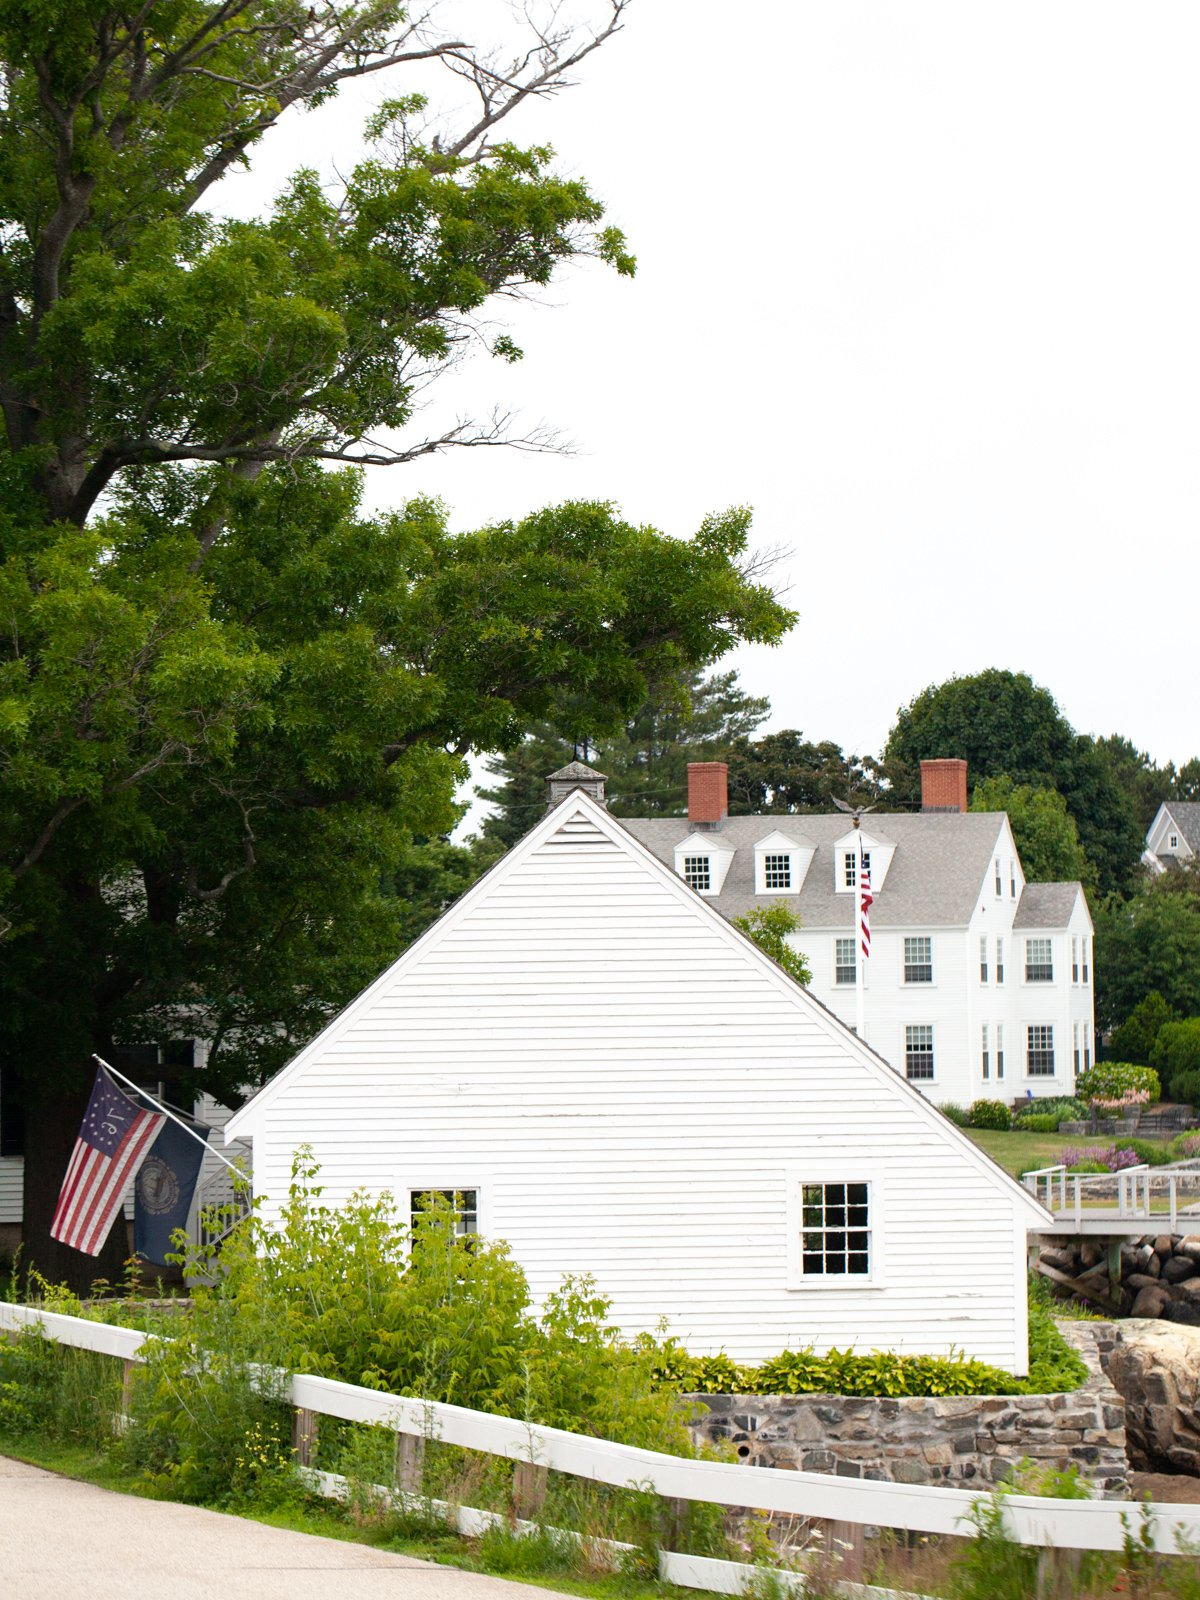 a white house with a flag in New Castle, NH